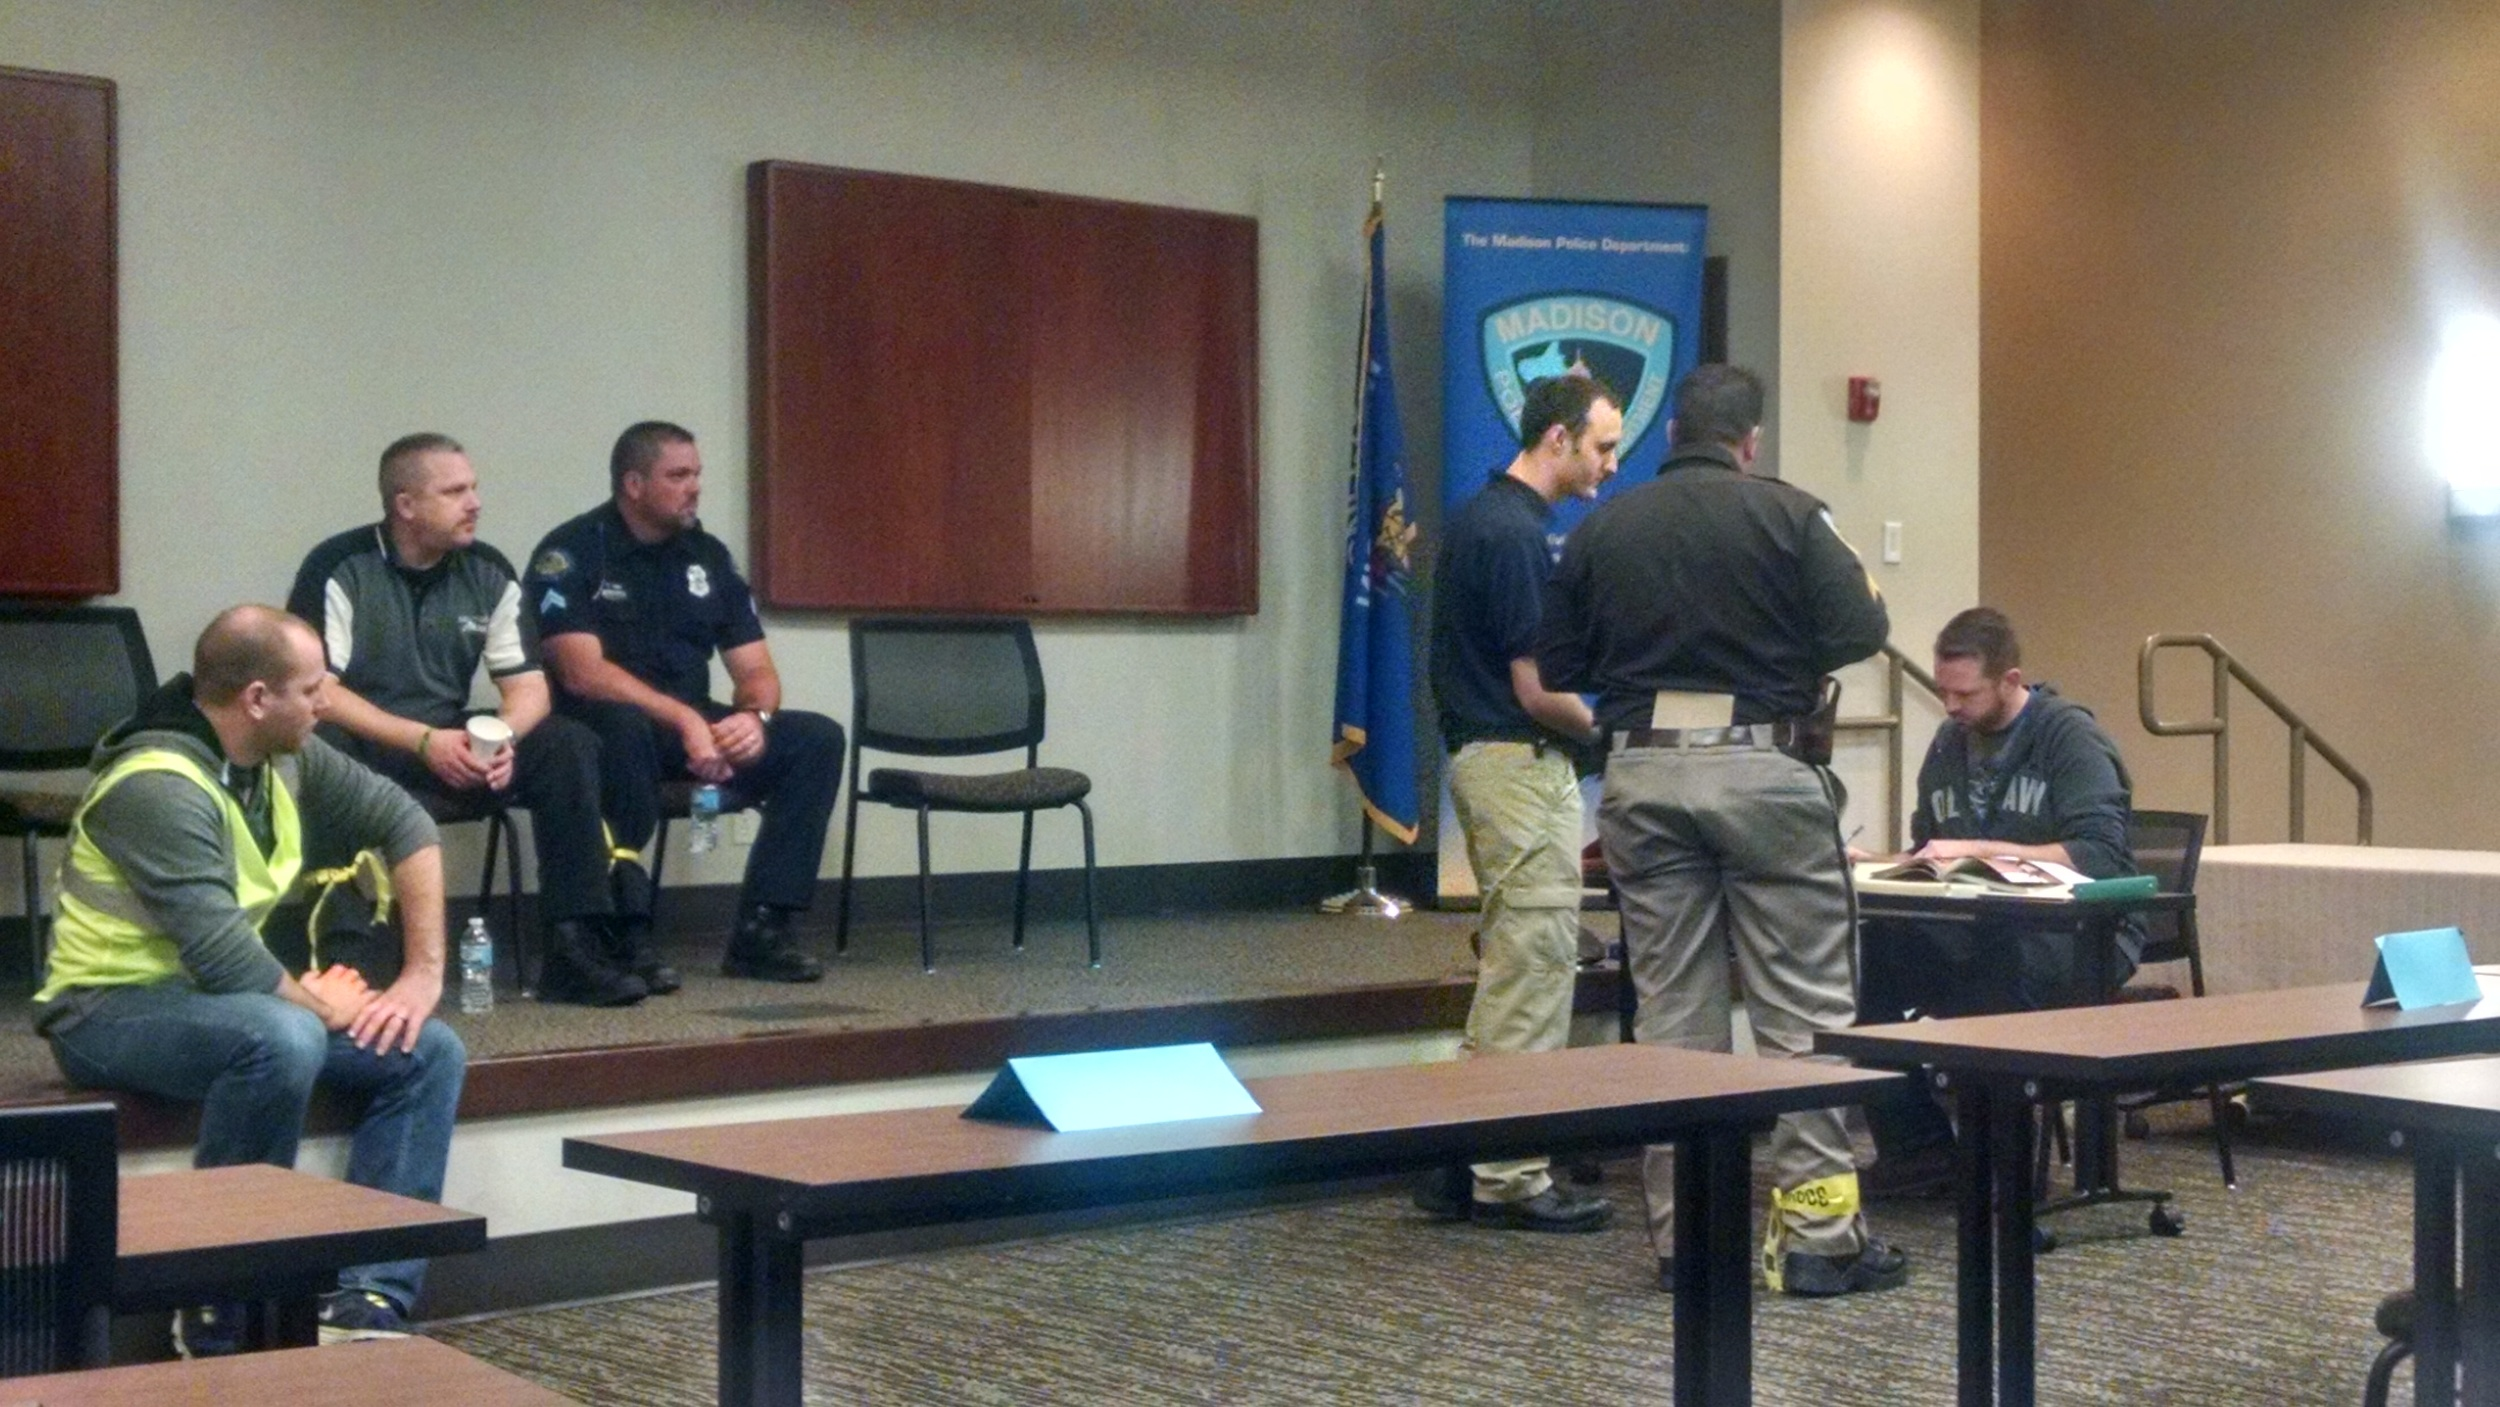 Madison Police Dept. and NAMI Dane County CIT: Role play day Dec. 2015